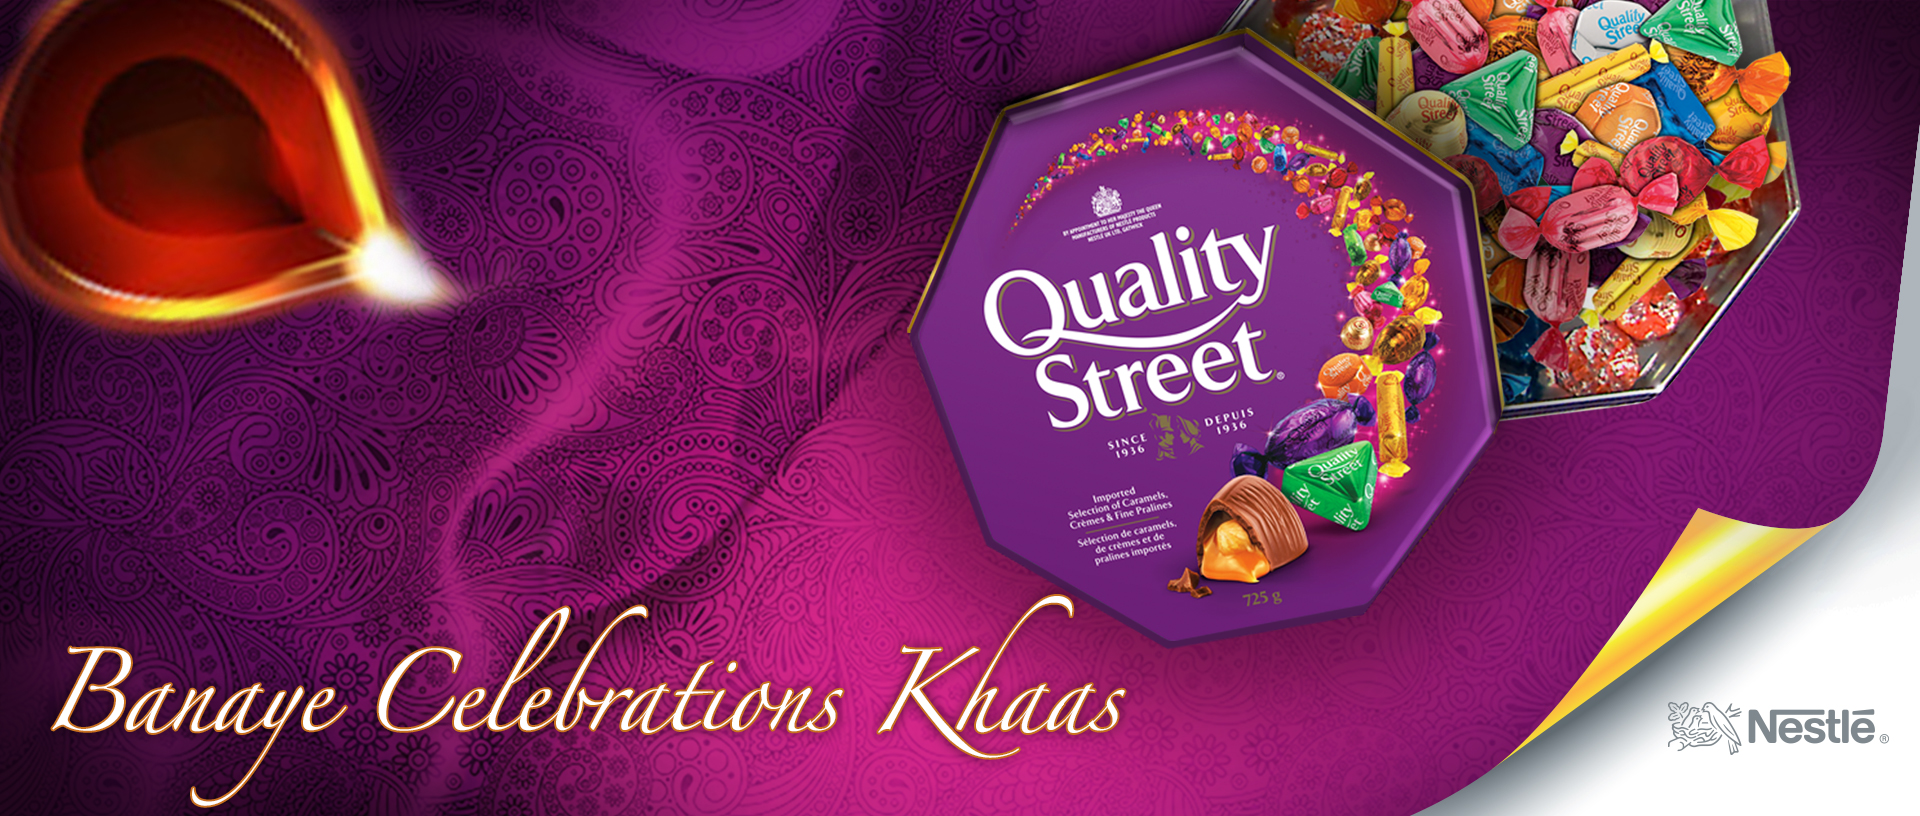 Quality-Street-Diwali-Campaign-Targeting-South-Asians